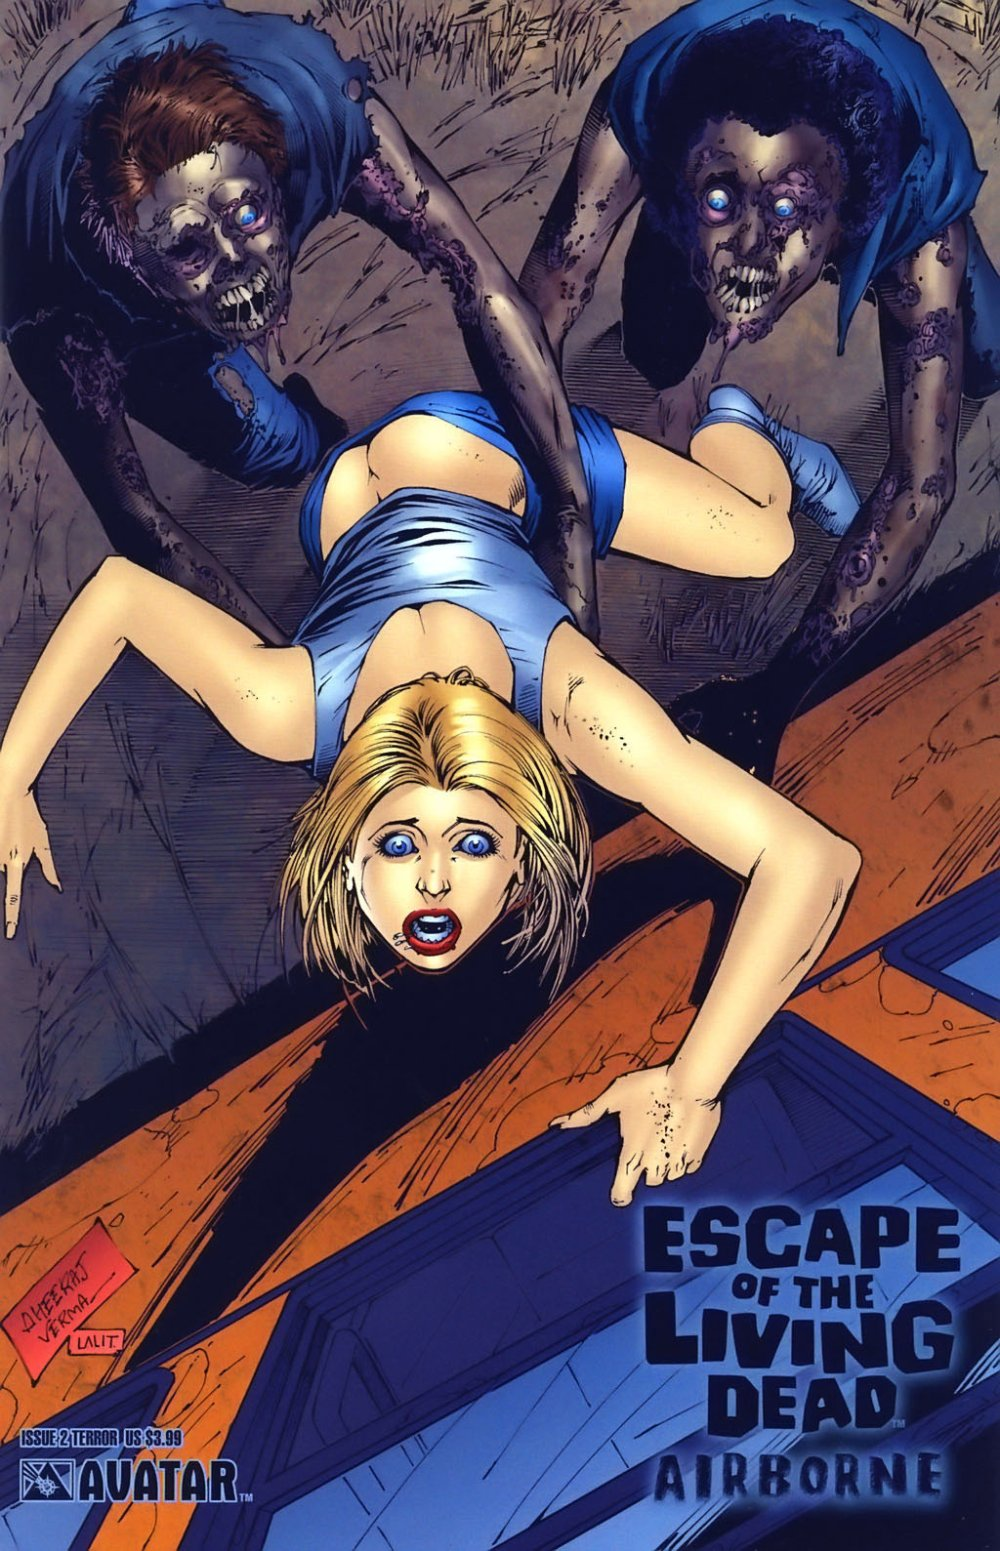 Escape Of The Living Dead- Airborne [Avatar] OS1 0002c.jpg